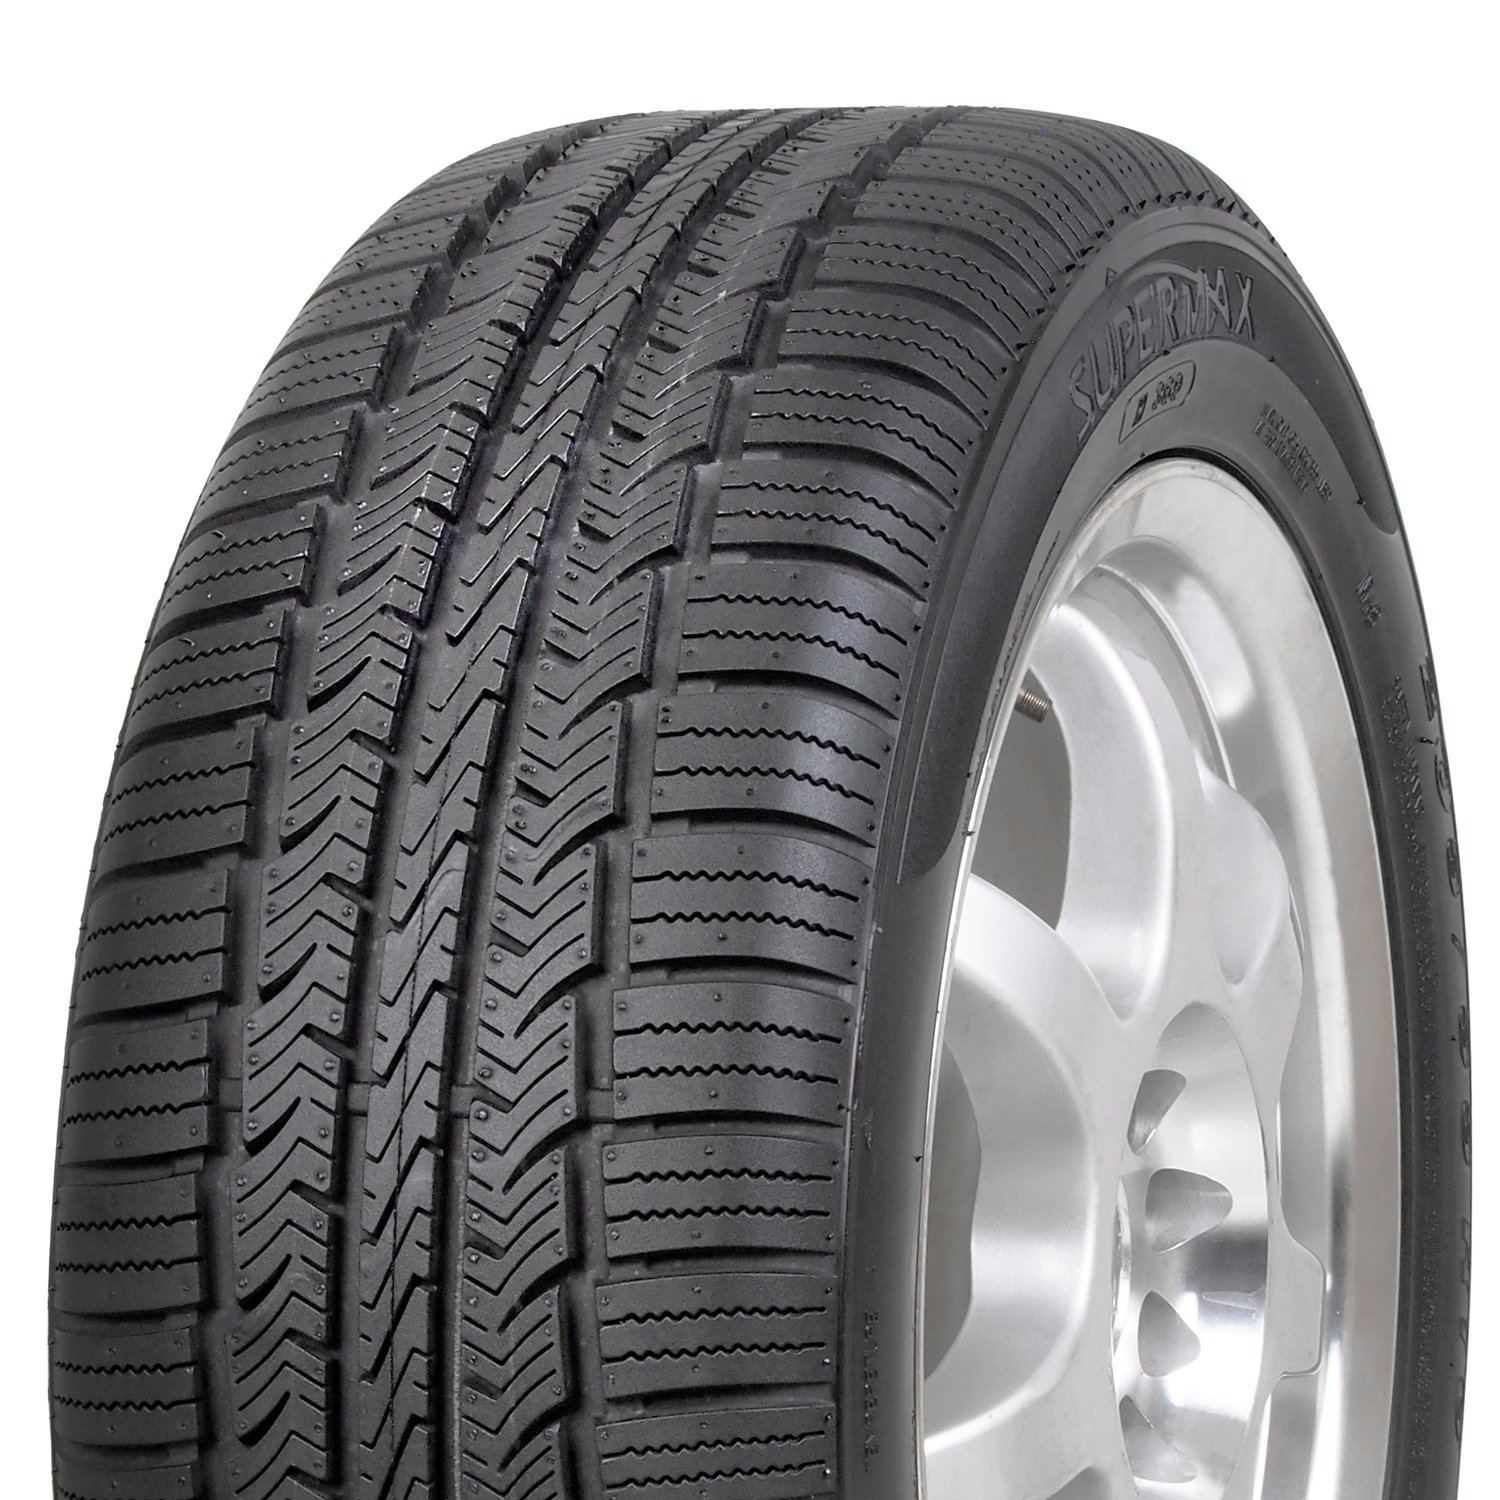 SUPERMAX TM-1 All- Season Radial Tire-205/55R16 91T by SUPERMAX